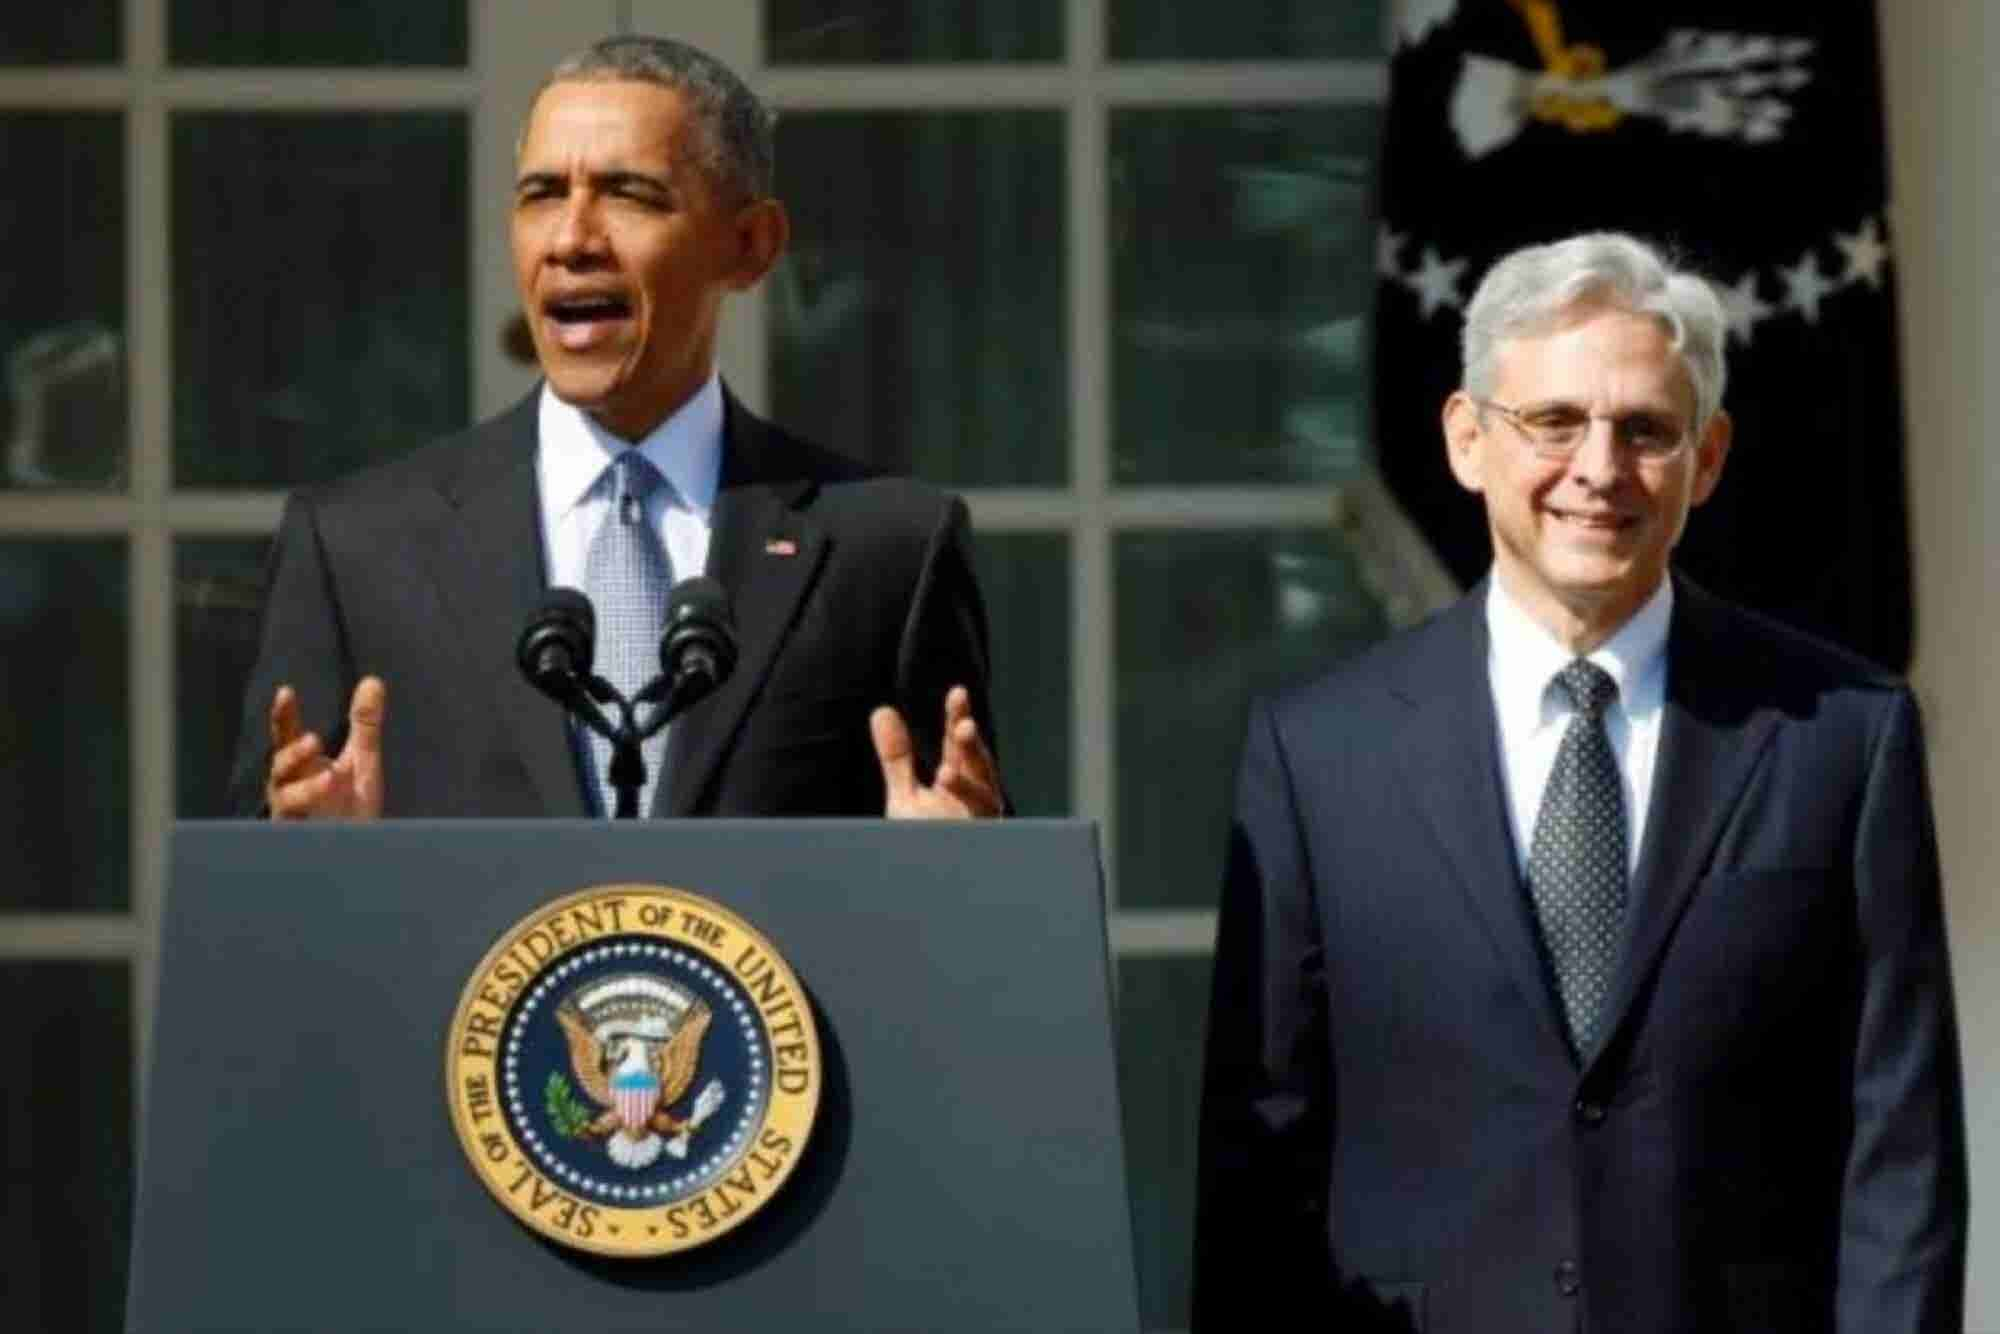 Obama Nominates Moderate, Veteran Judge for Supreme Court